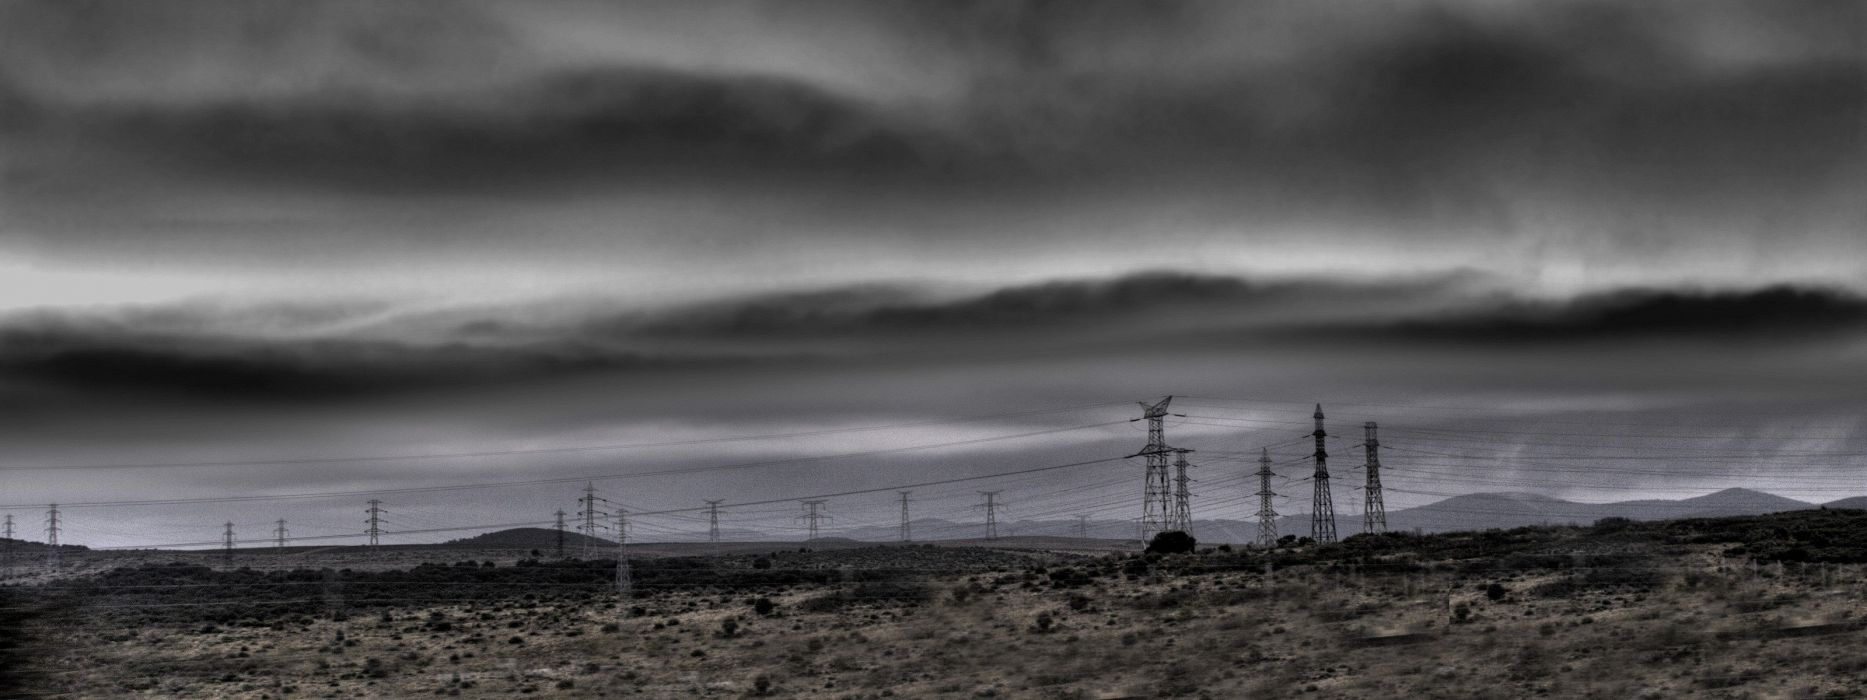 skylines duel electric power lines wallpaper